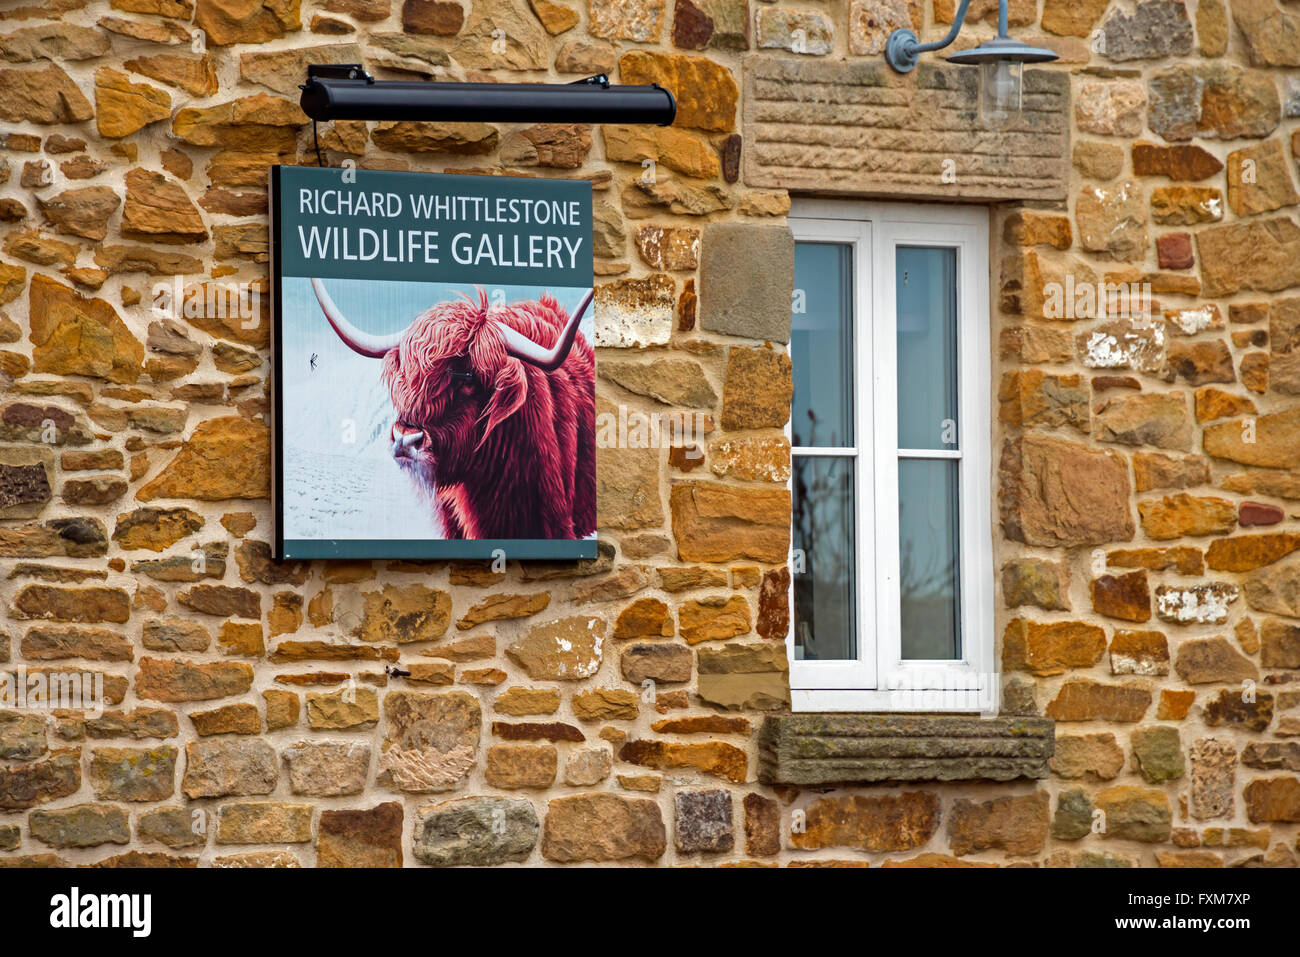 Richard Whittlestone Wildlife Gallery, Pilsley, Derbyshire - Stock Image